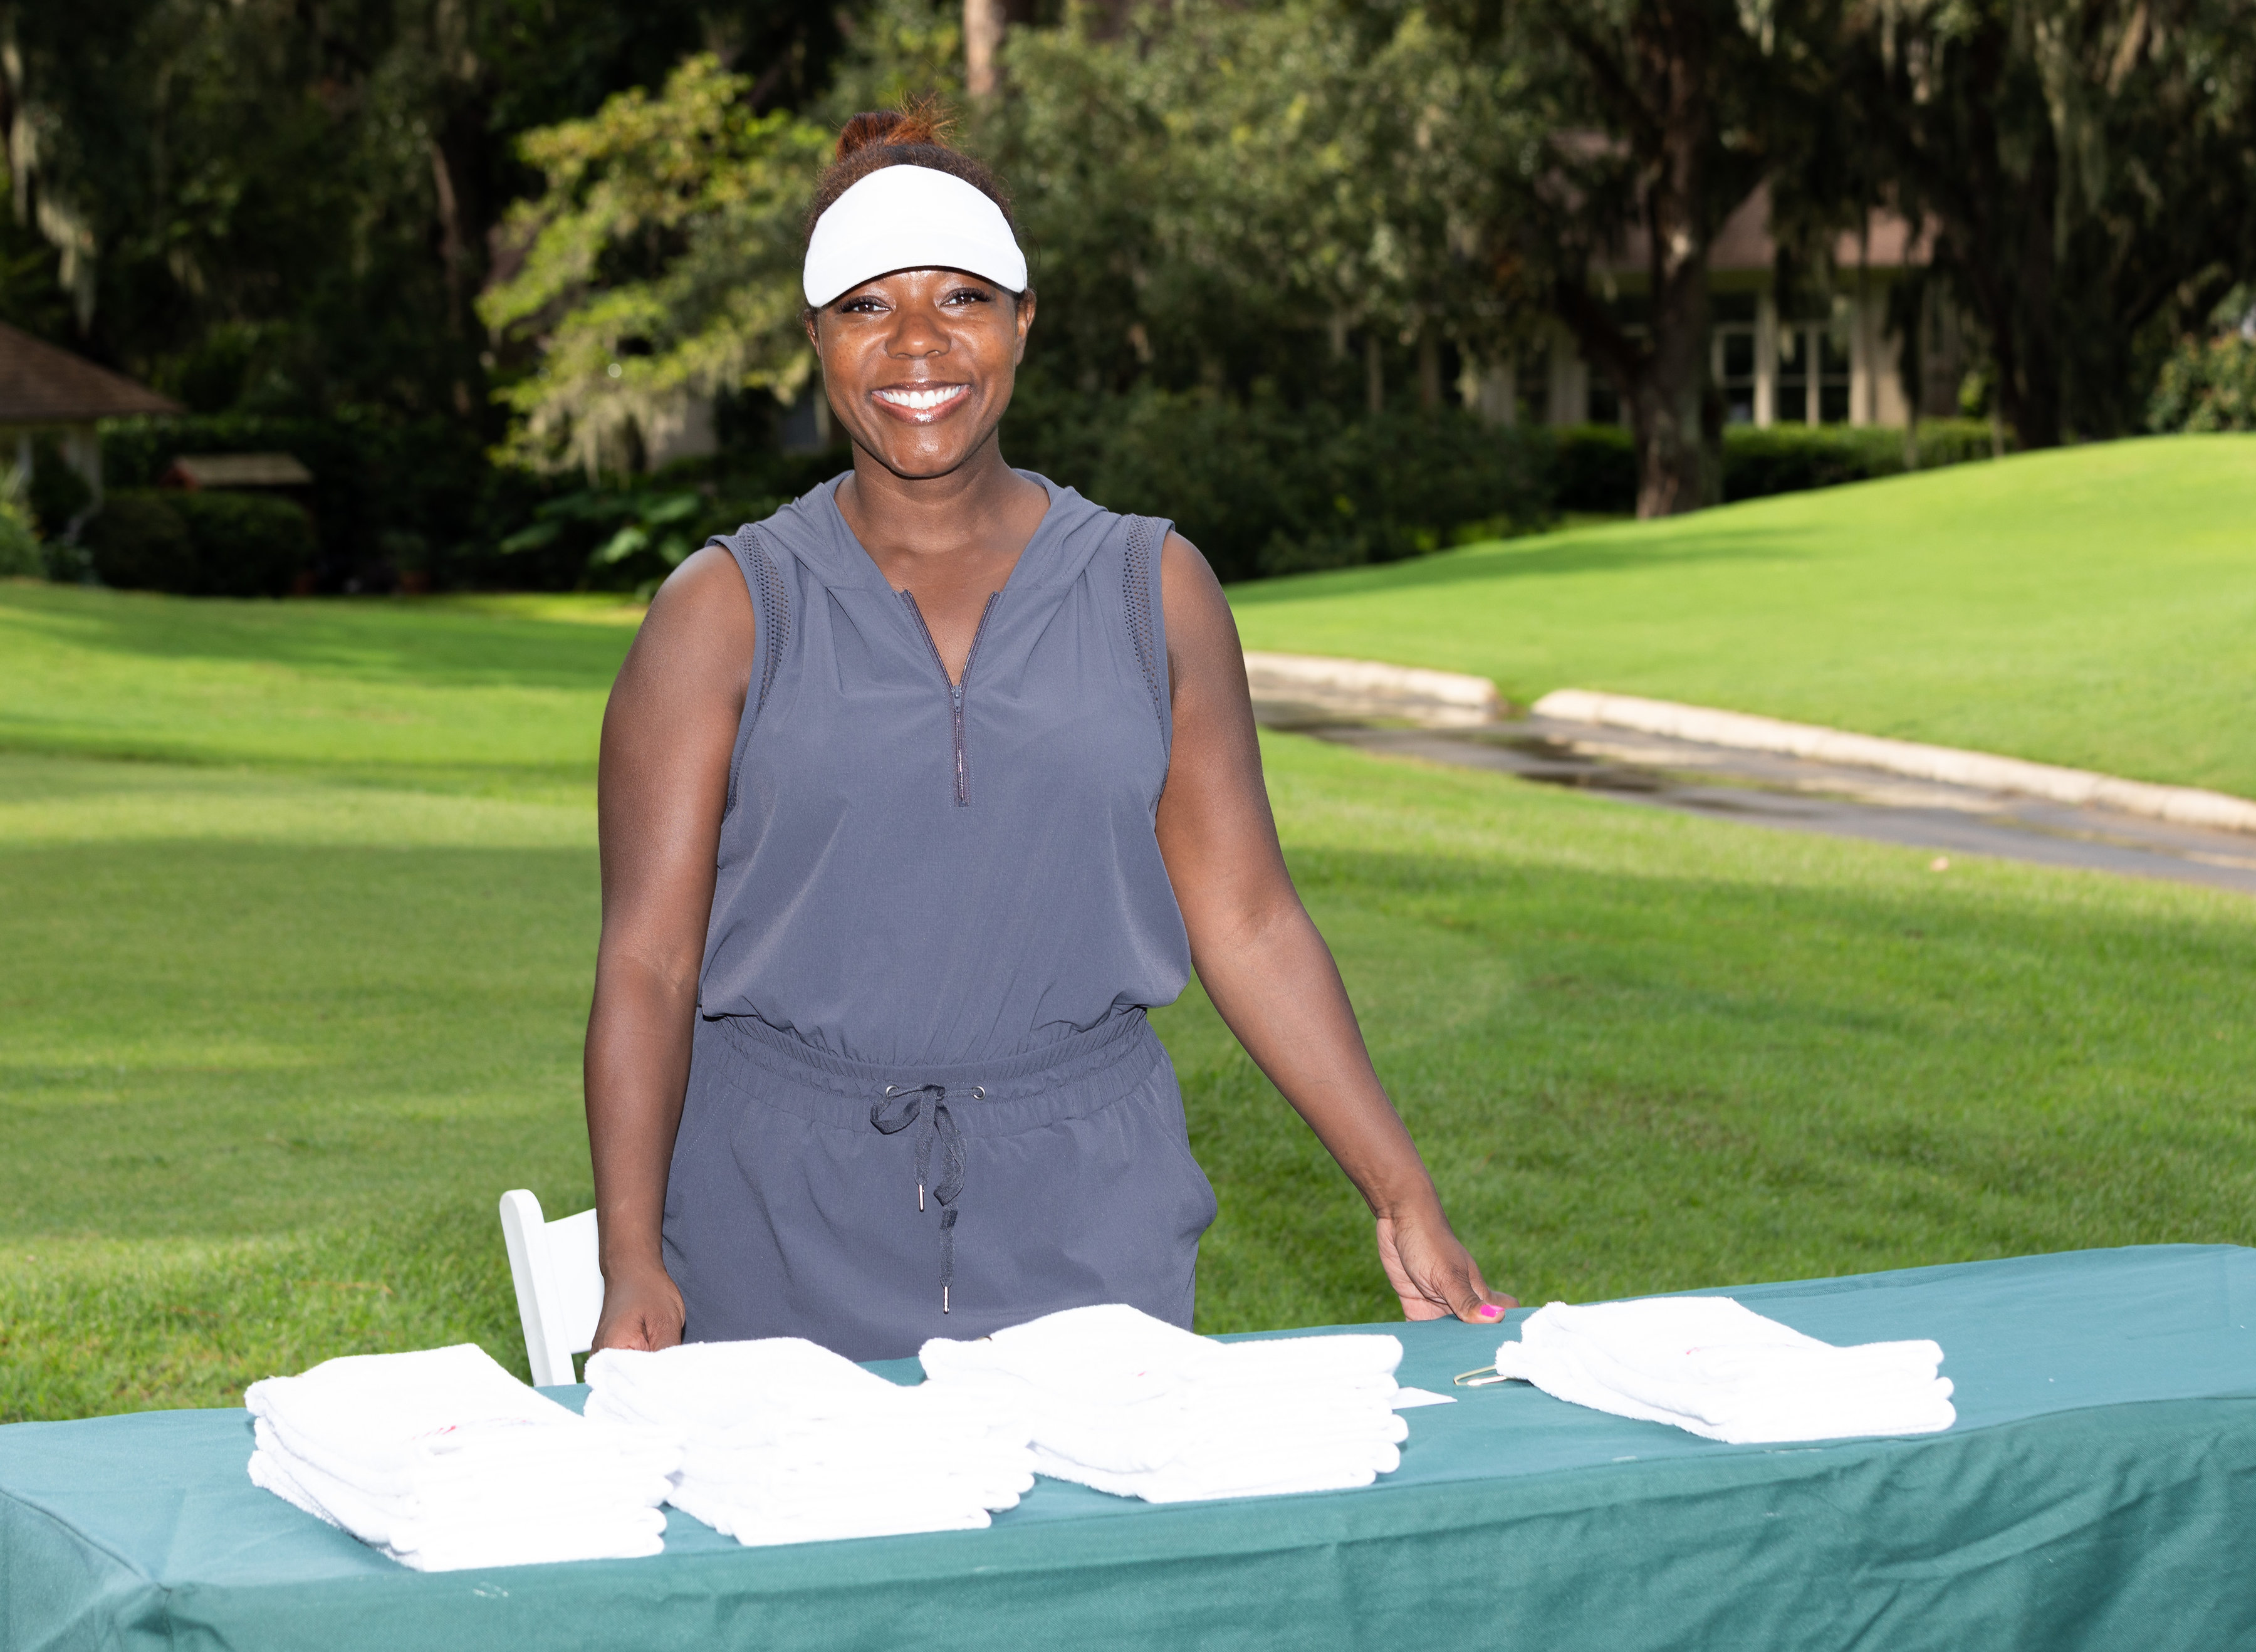 Venus Groups Supports the 31st Annual American Hotel & Lodging Association (AHLA) Golf Classic